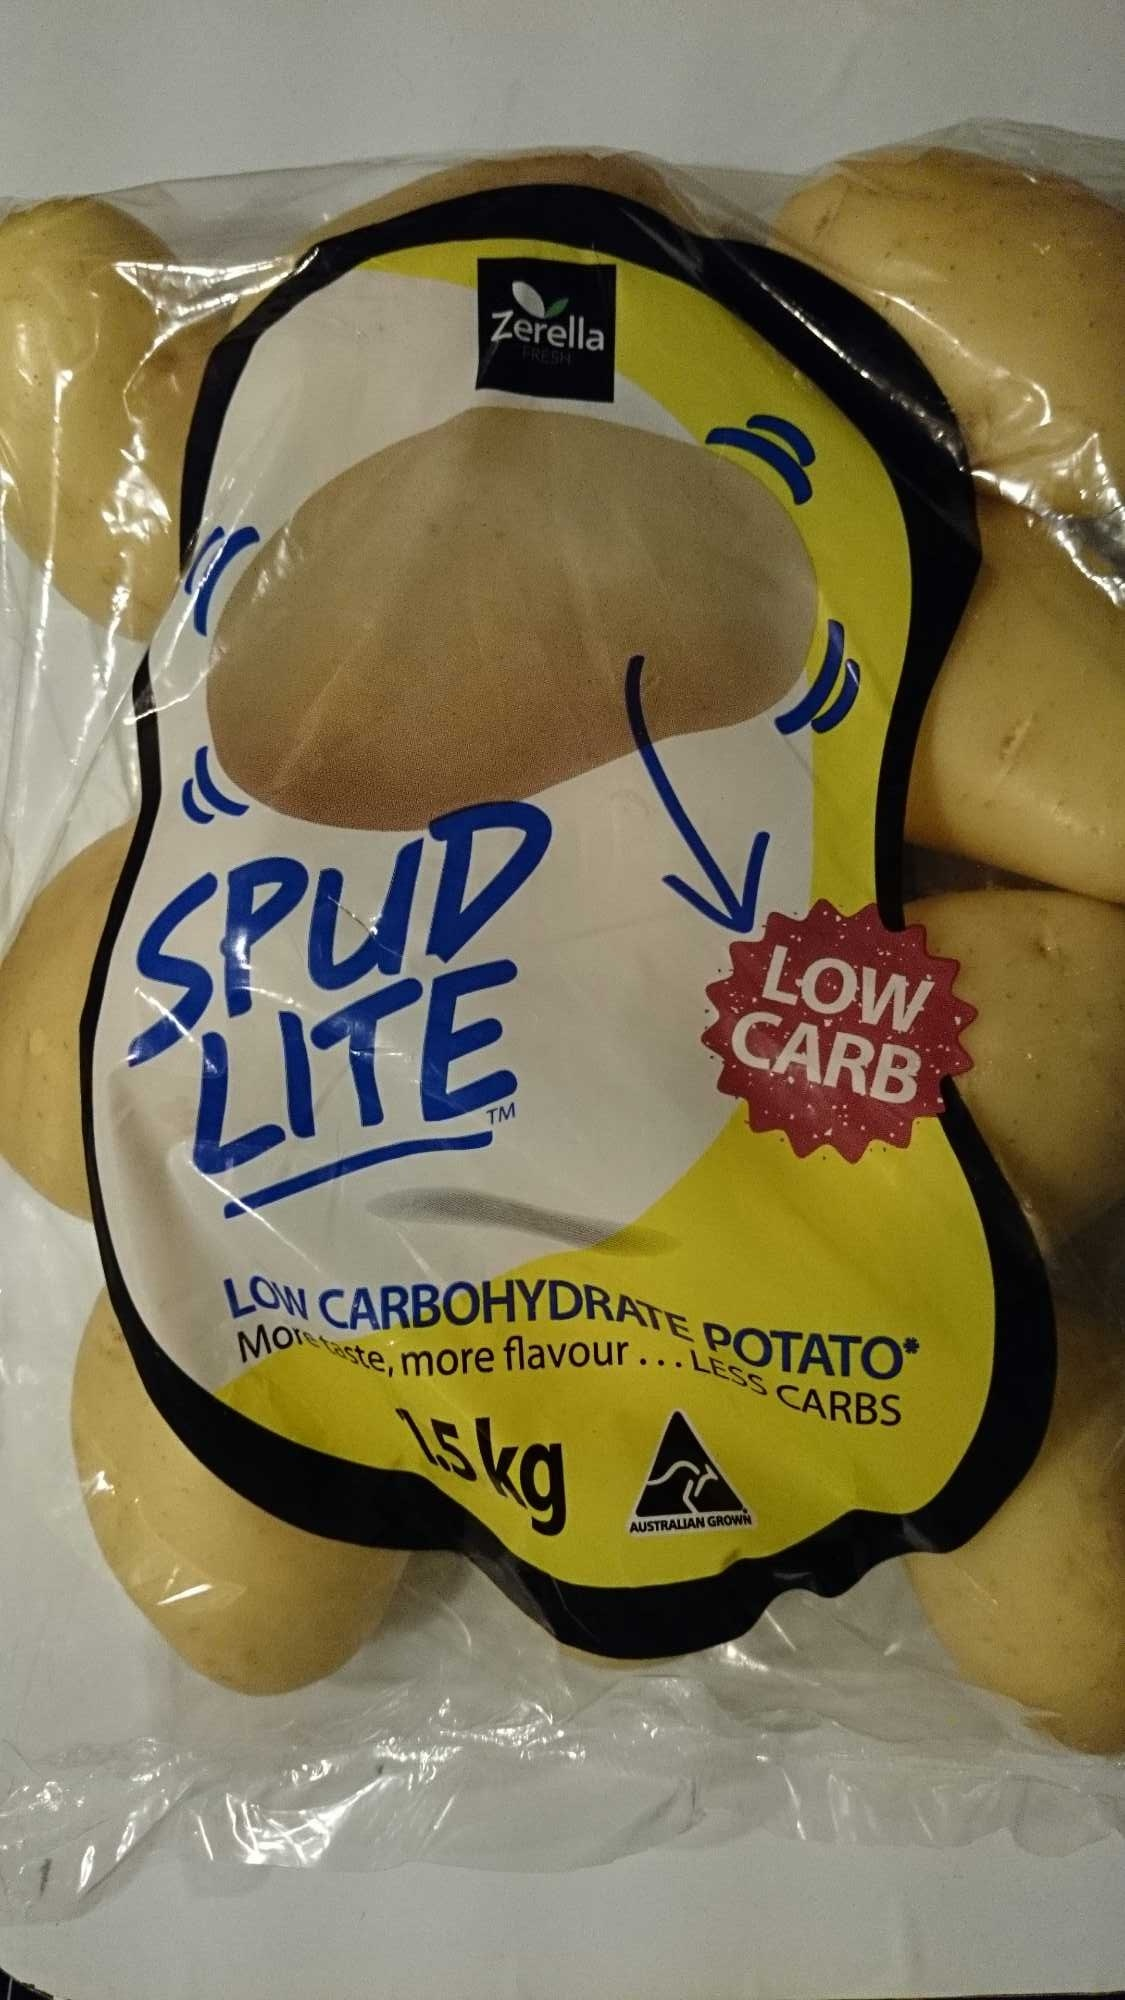 Spud Lite Low Carbohydrate Potato Zerella Fresh 1 5kg